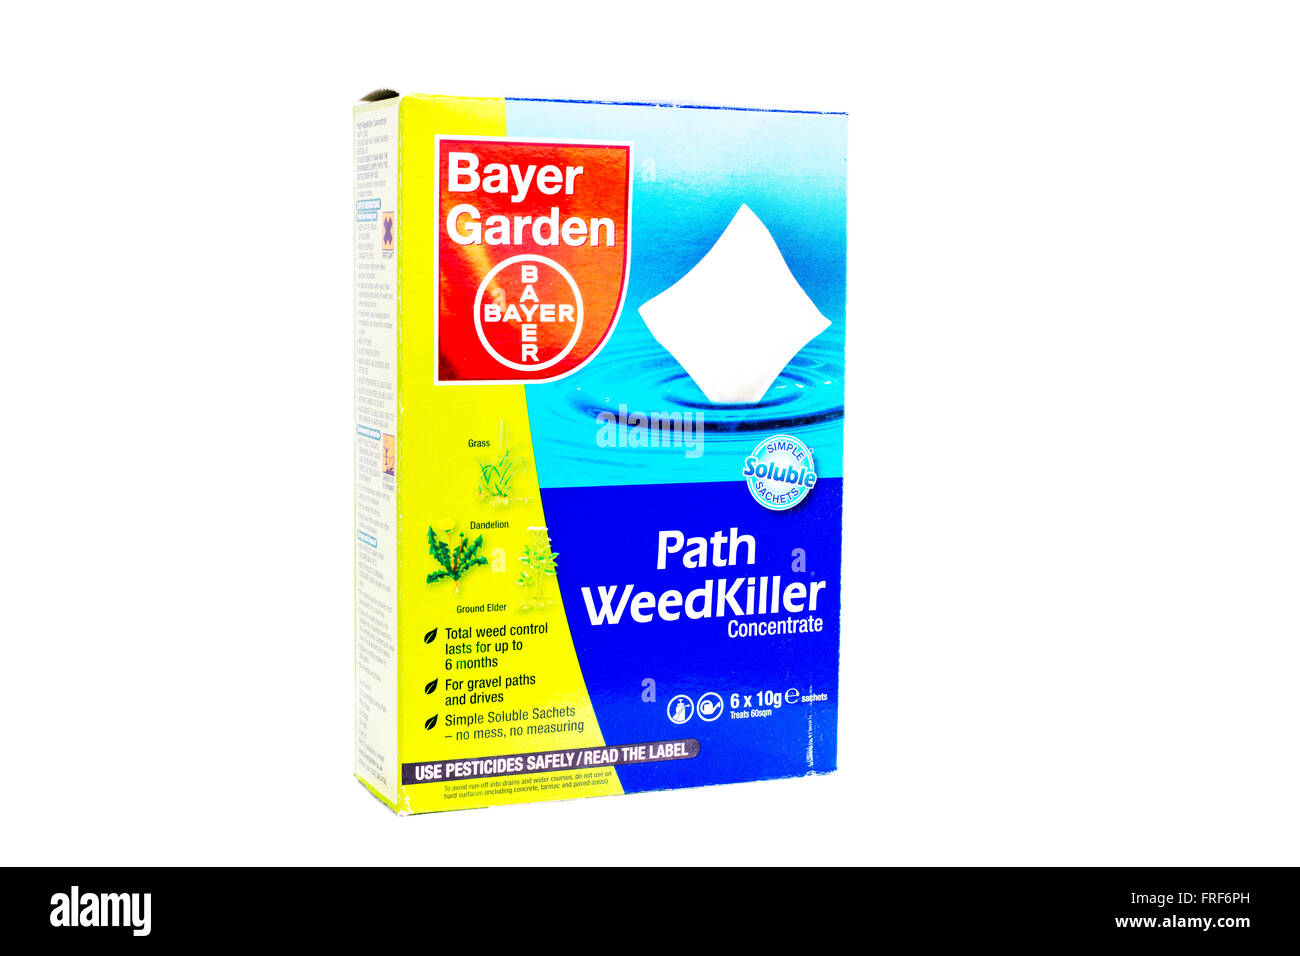 Path weedkiller kills weeds Bayer Garden product logo brand cutout cut out white background isolated UK England - Stock Image